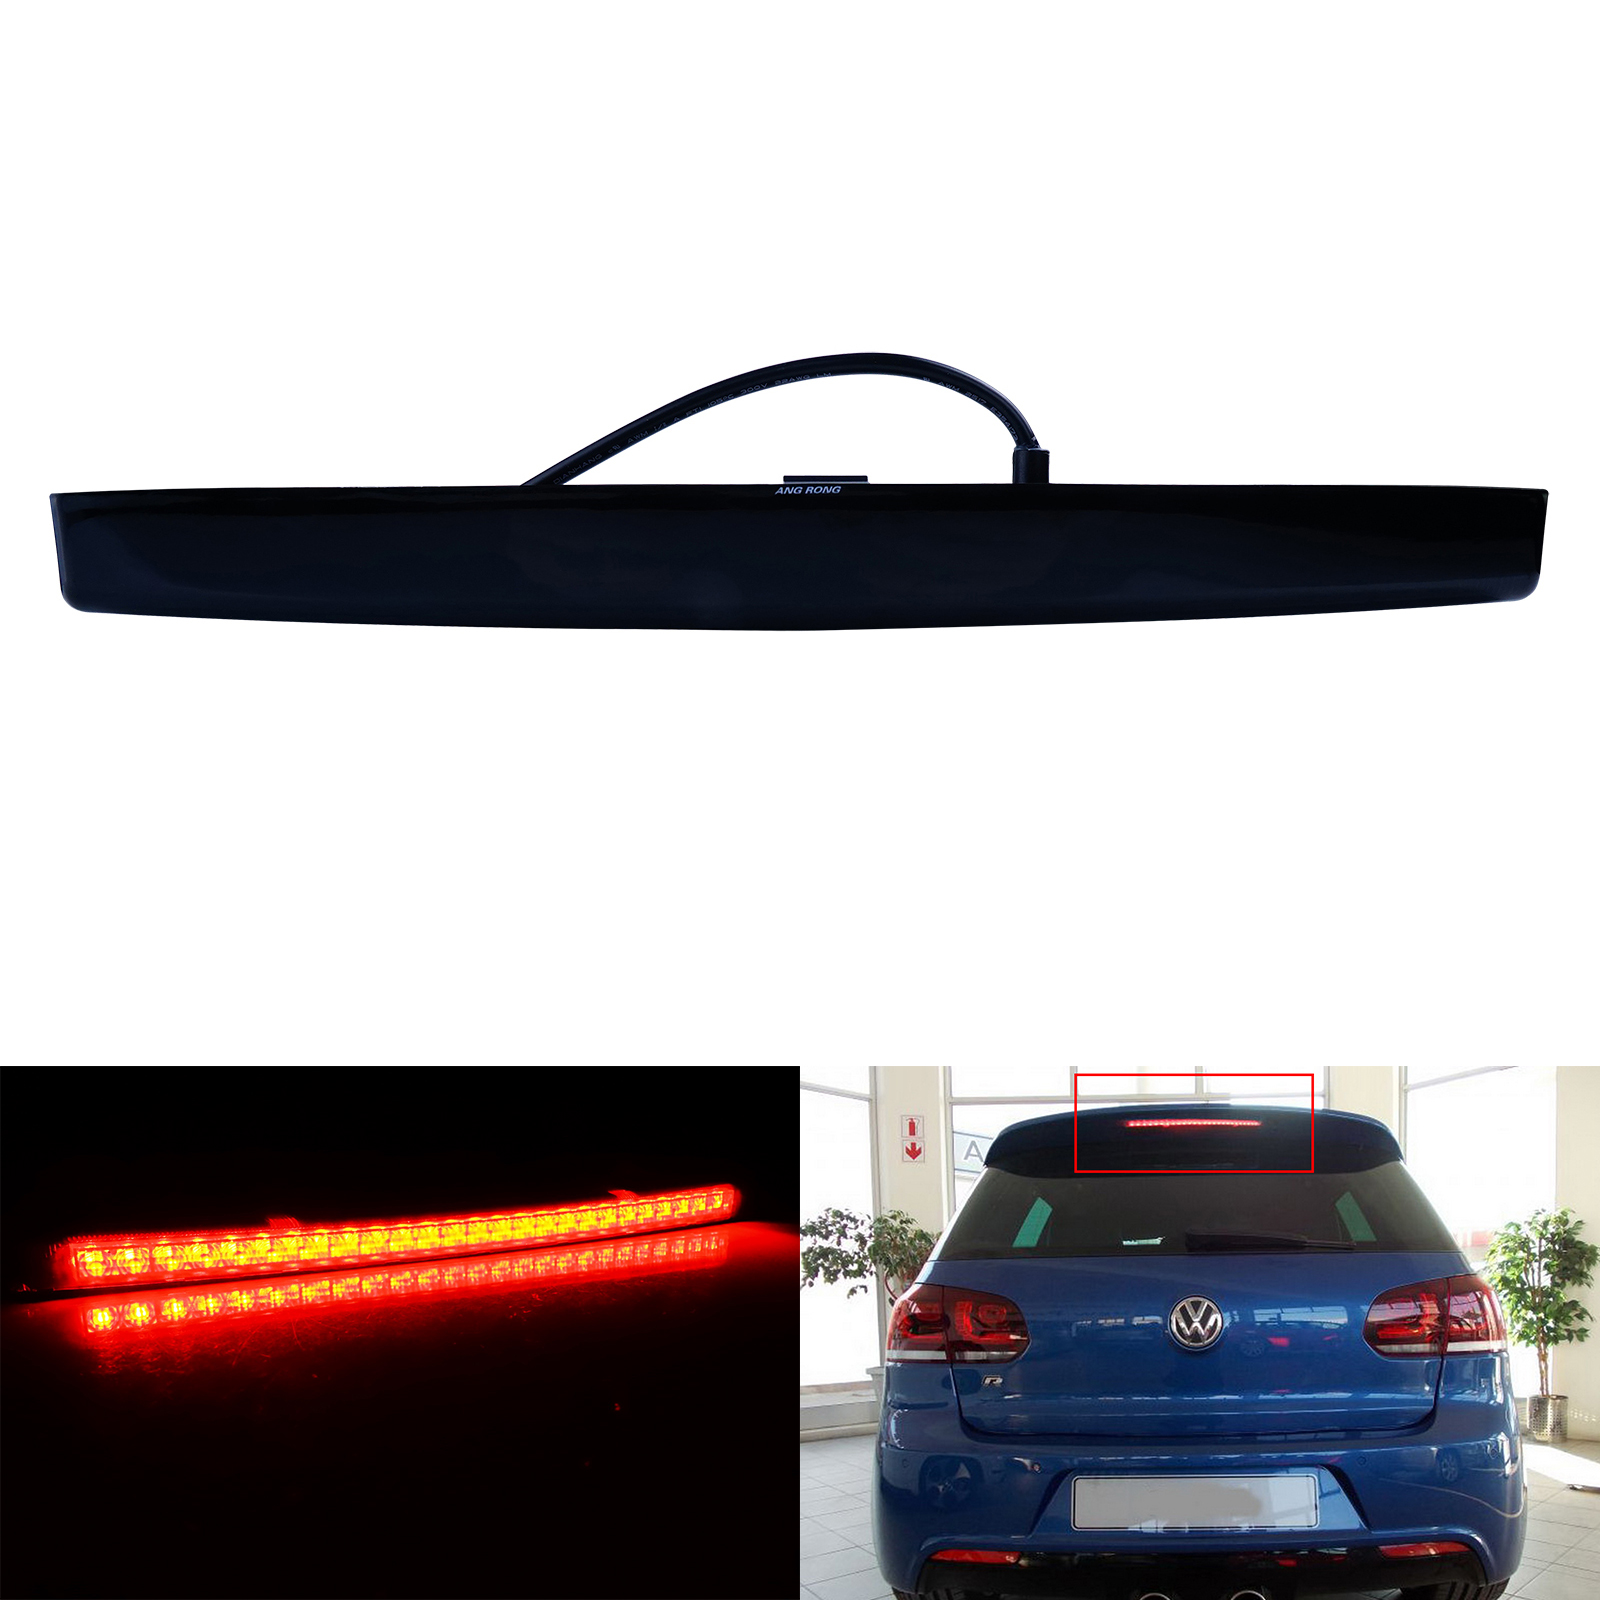 ANGRONG 1x Black Lens <font><b>LED</b></font> High Level Third Brake Stop <font><b>Light</b></font> For <font><b>VW</b></font> <font><b>Golf</b></font> <font><b>MK5</b></font> GTI R32 2004-09 image